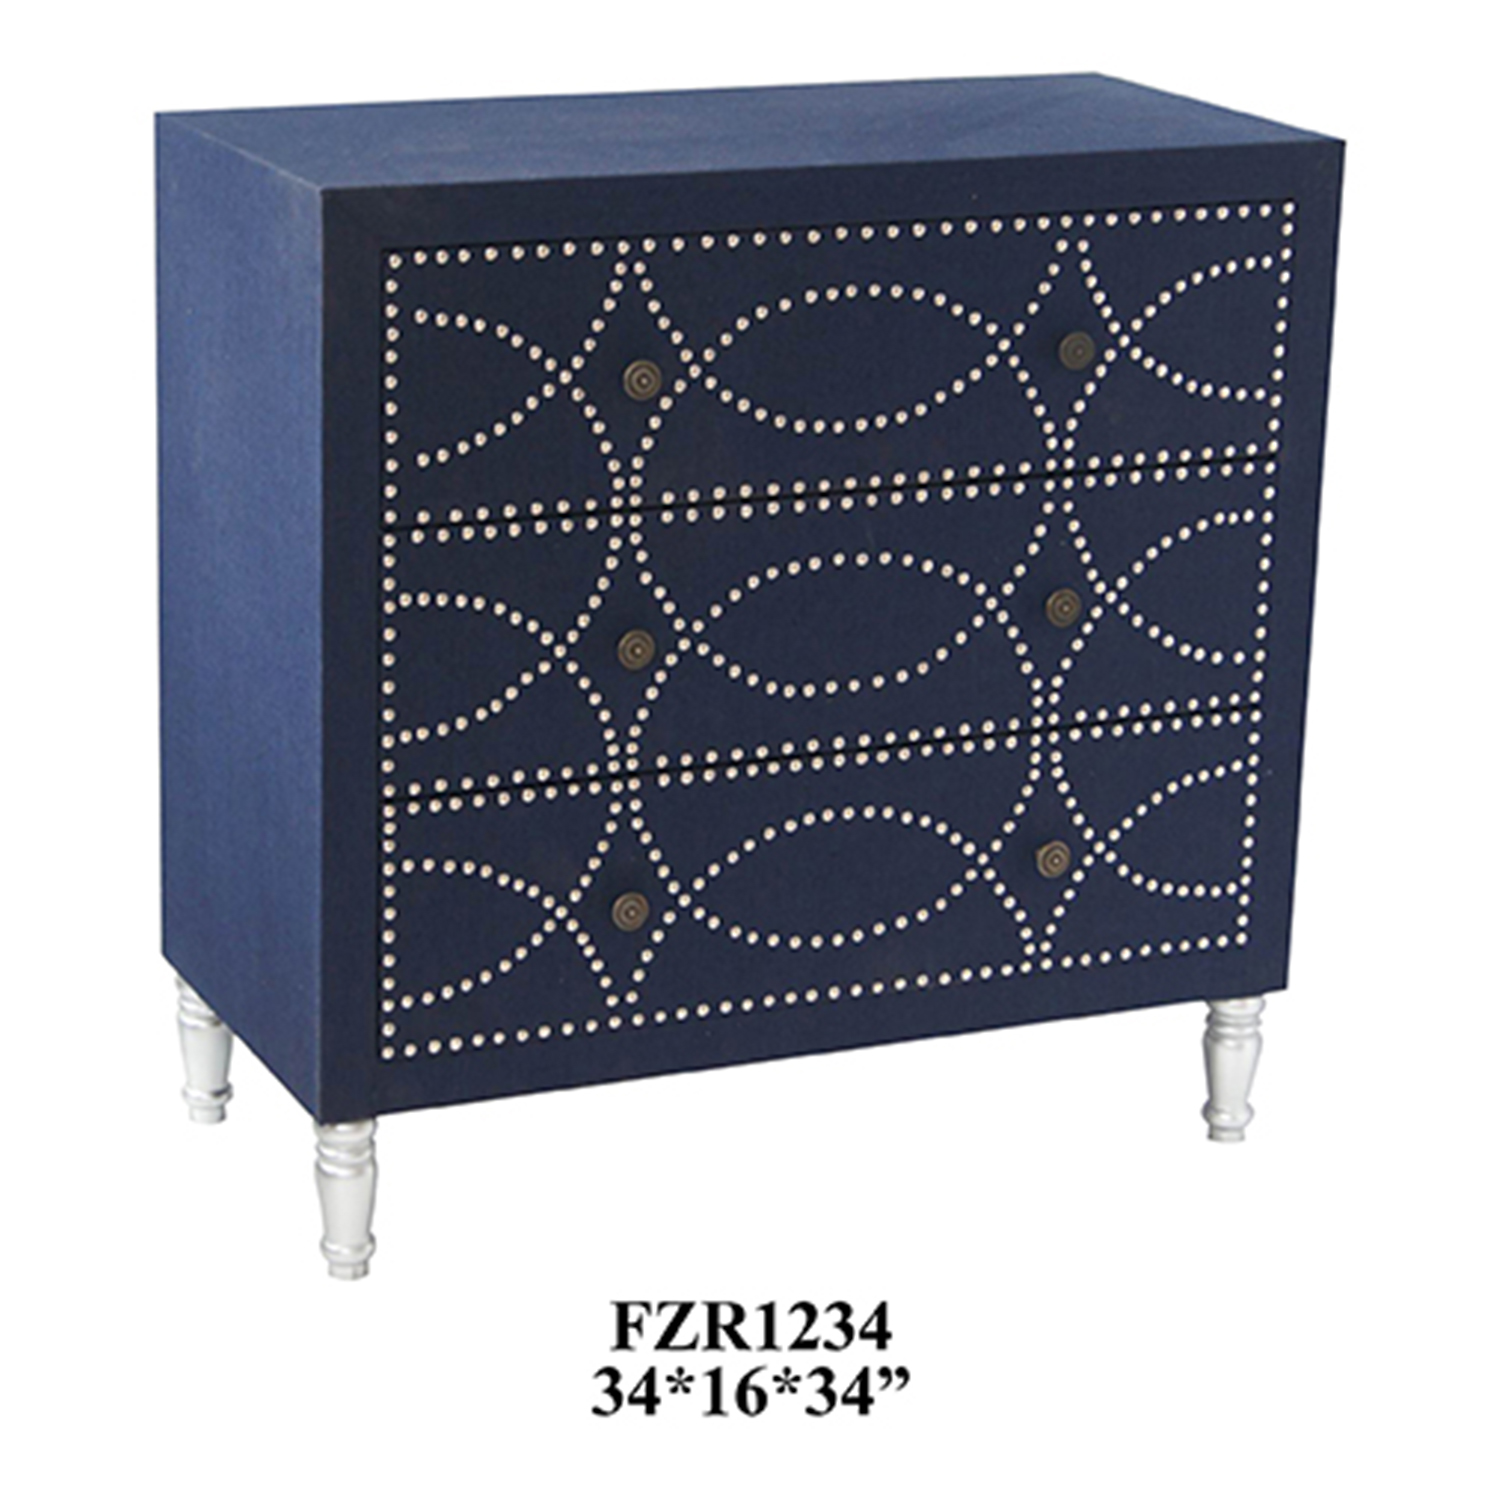 Crestview Cobalt Blue Fabric And Chrome Nailhead 3 Drawer Chest CVFZR1234